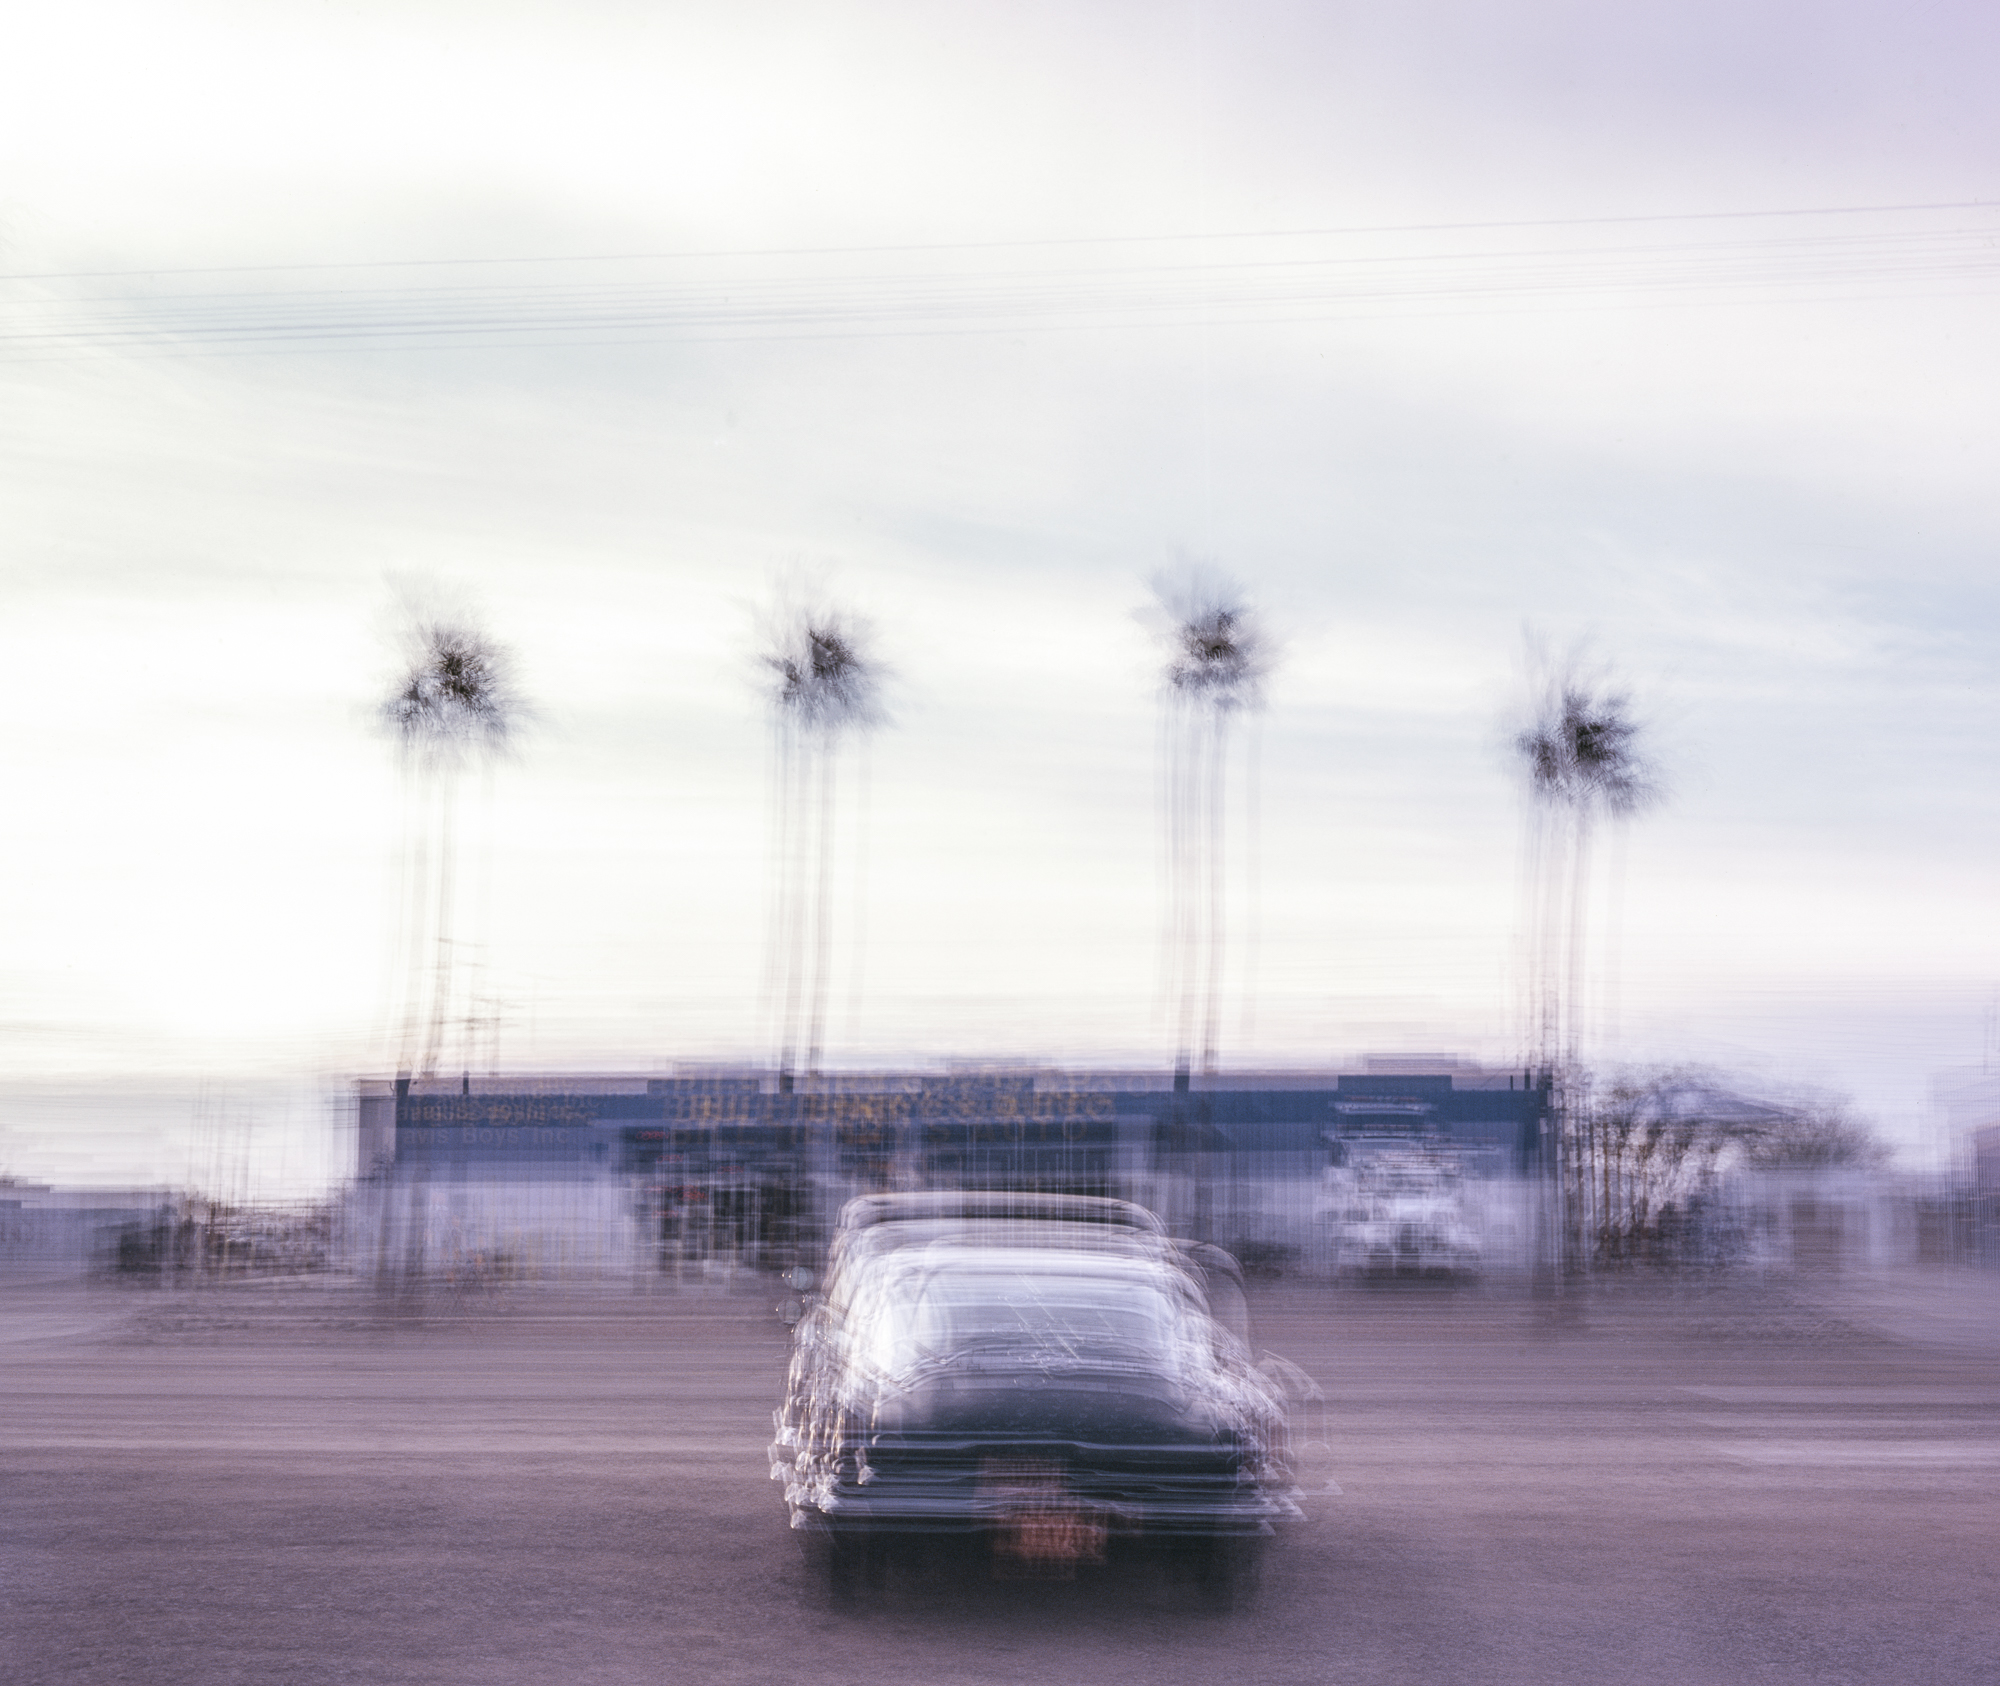 1965 Barracuda with four palm trees